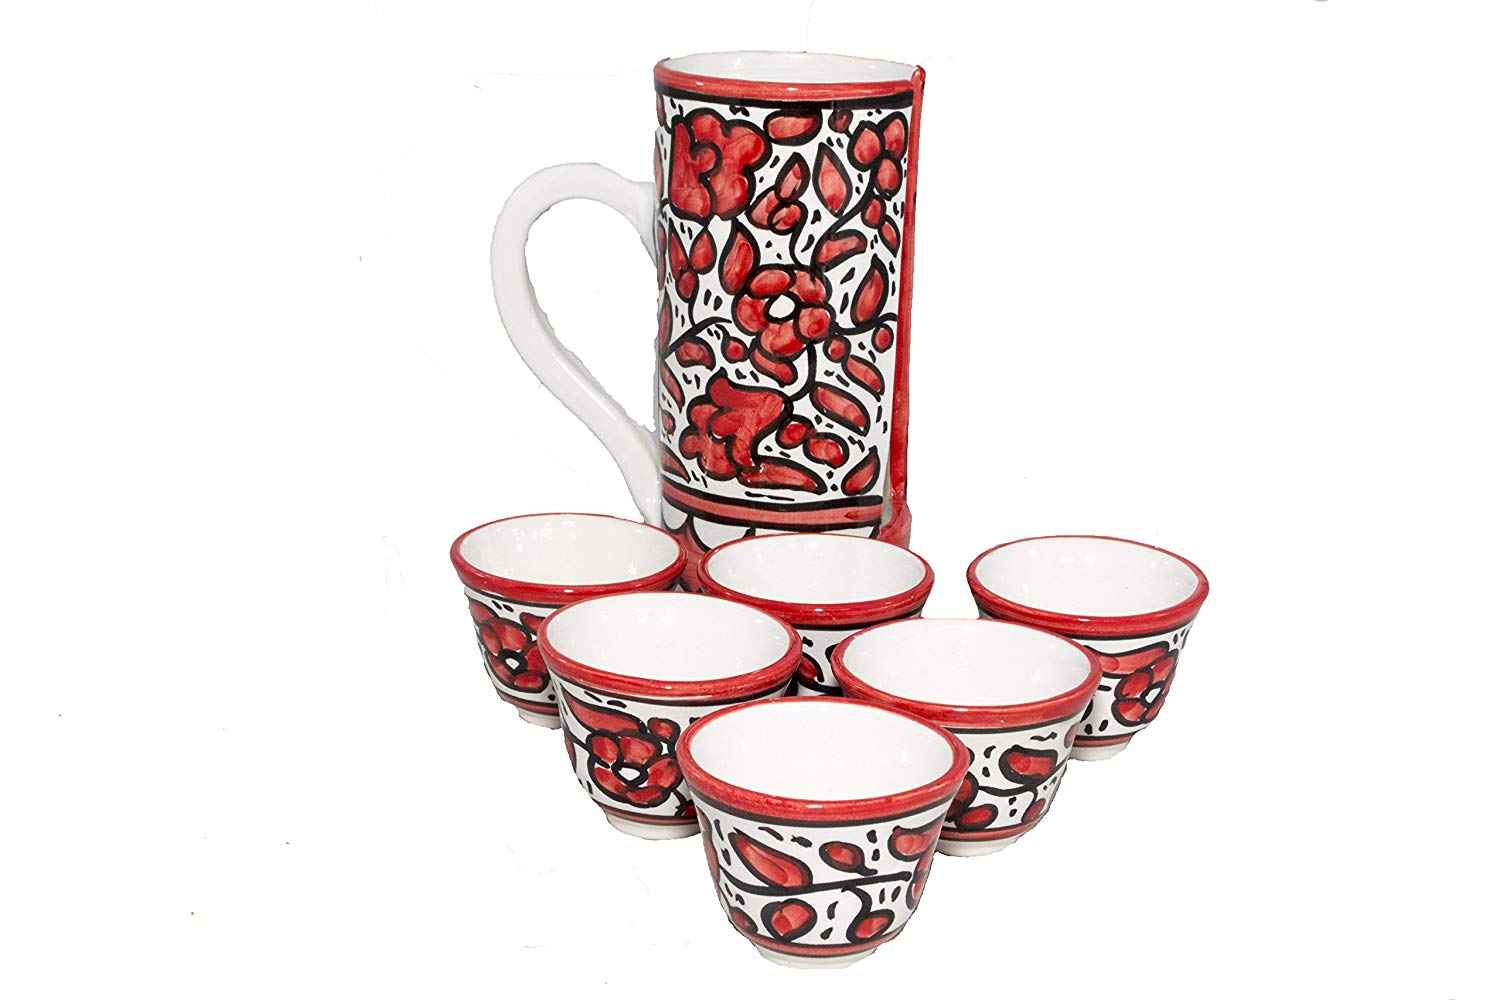 "Arabic Decorative Coffee Cup (2.5 fl. oz.) - Handmade and Hand Painted Ceramic Crafted By Hebron Artisans, 6 Pieces - (2.5"" x 2"" x 2.5"") Holder - (7.3"" x 3.3"" x 7.3"")"